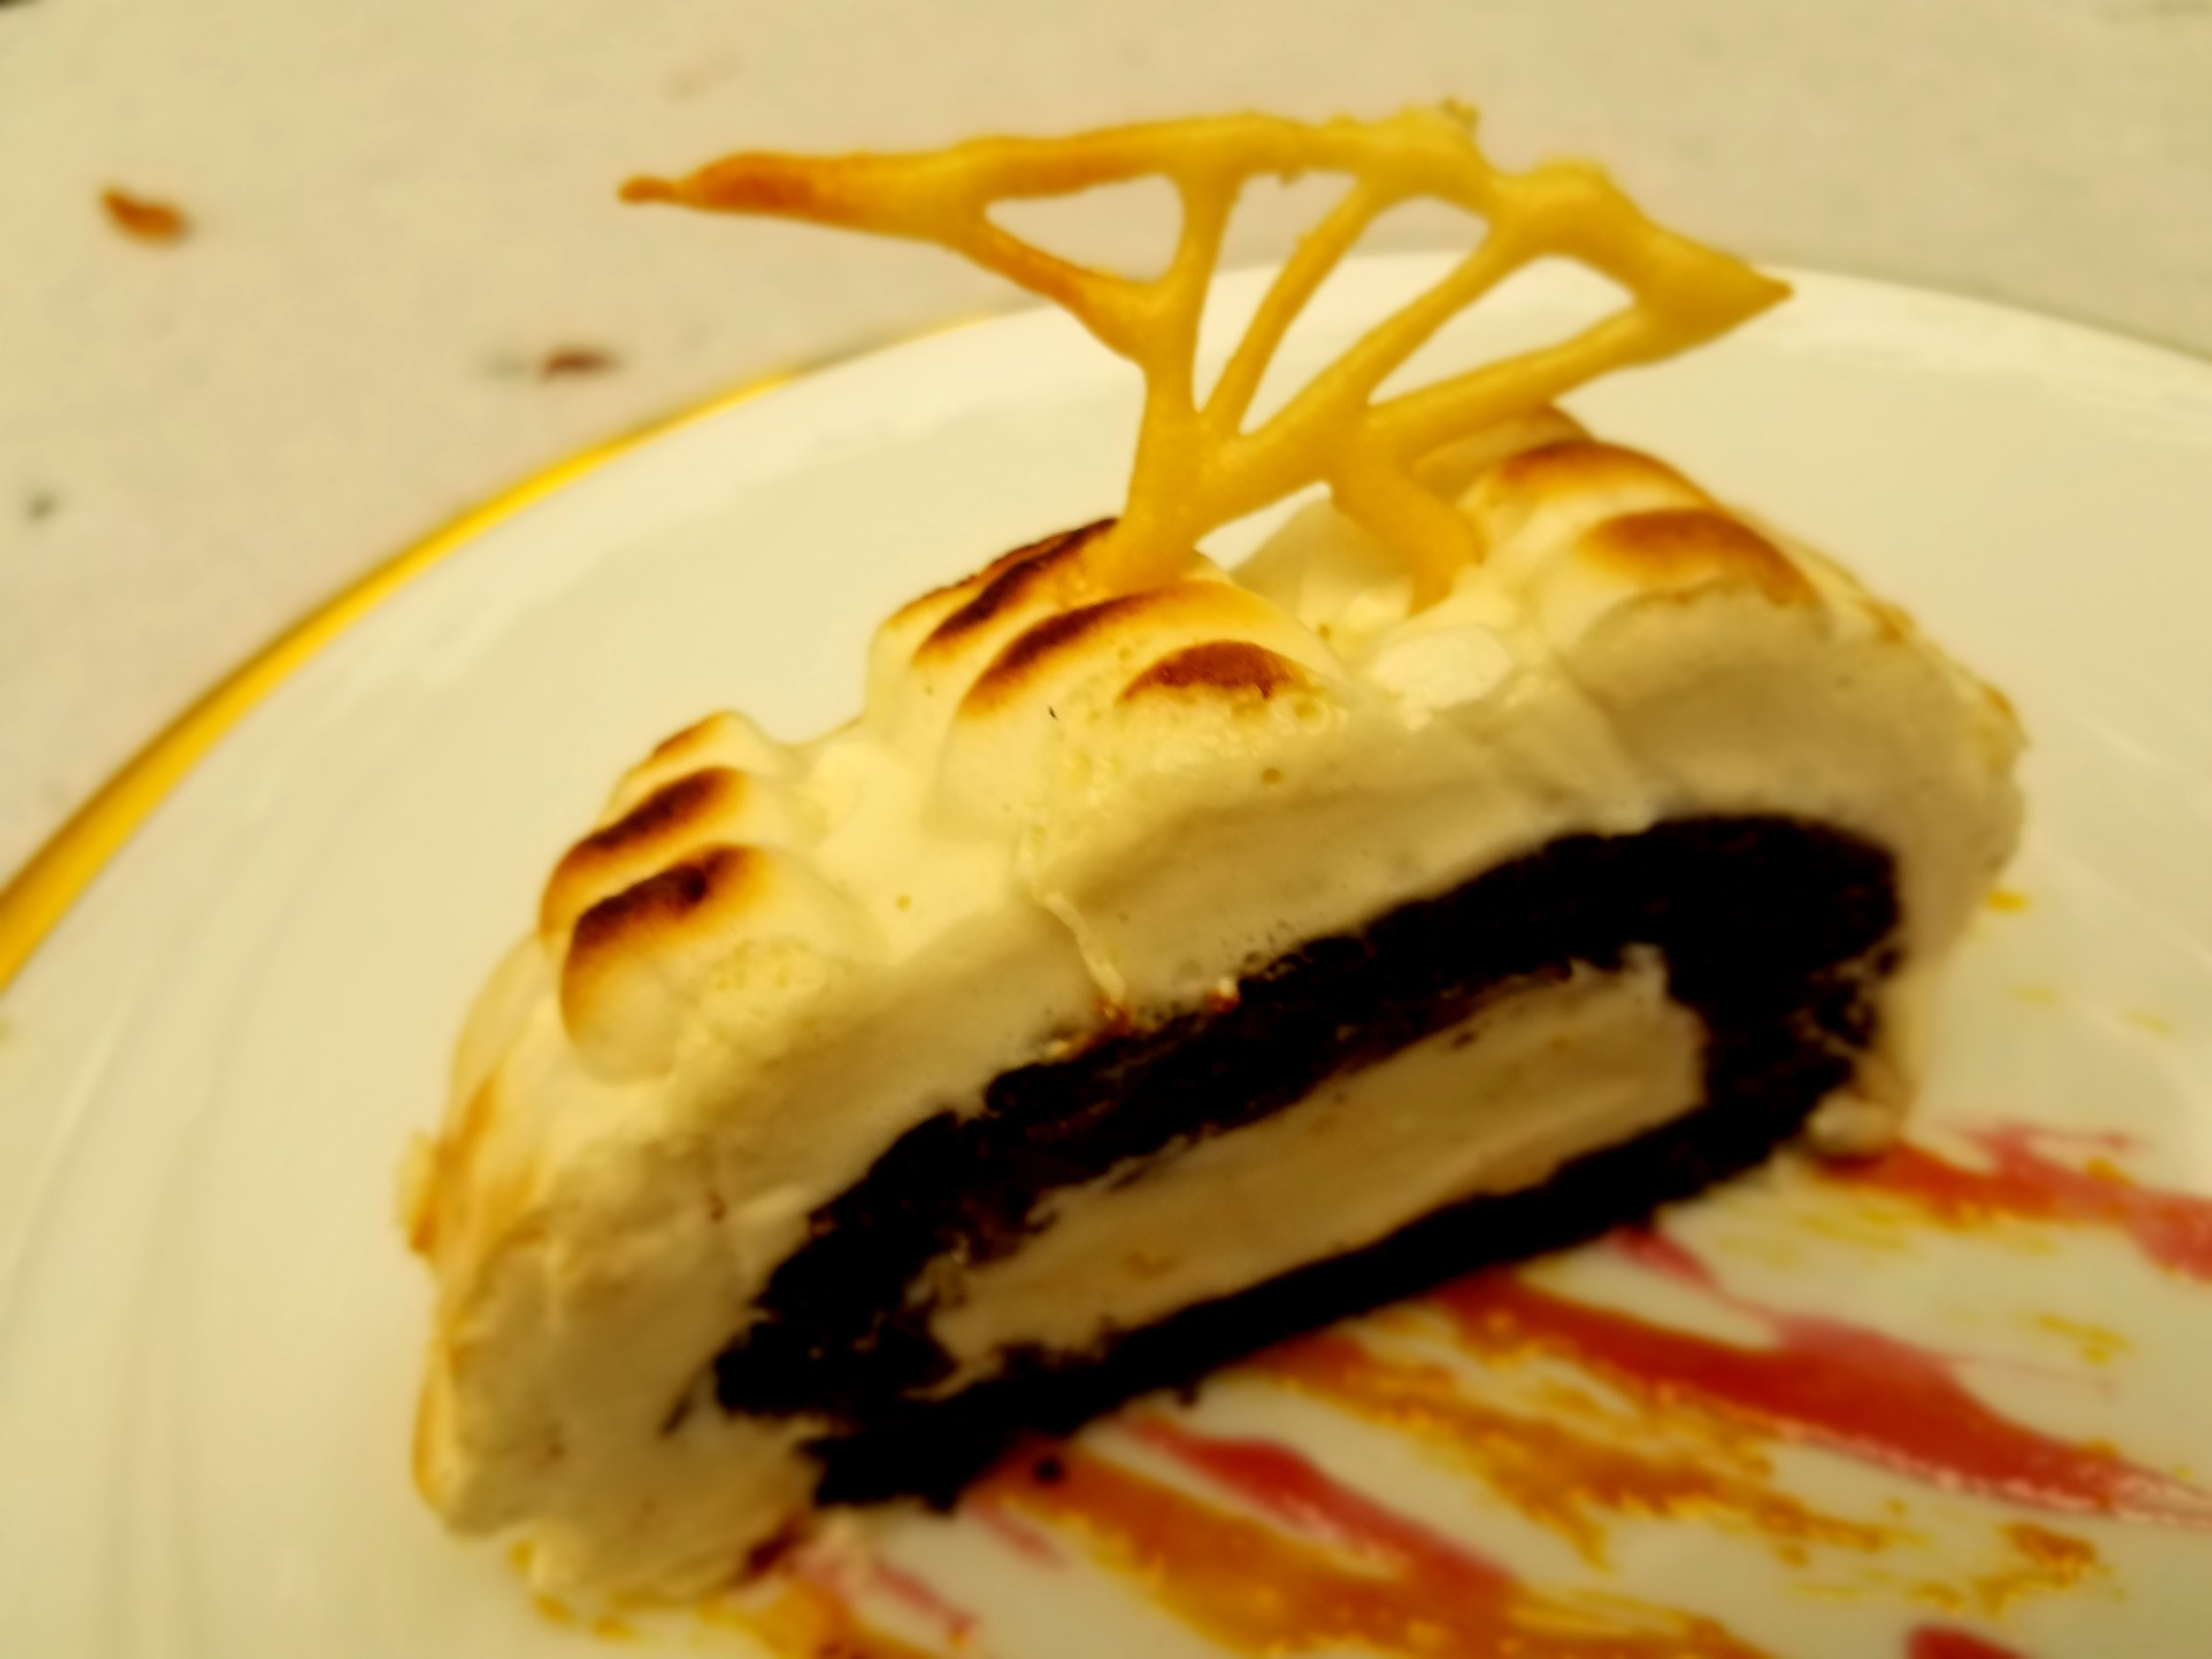 Plant-Based Baked Alaska with Amaretto Pulse Meringue